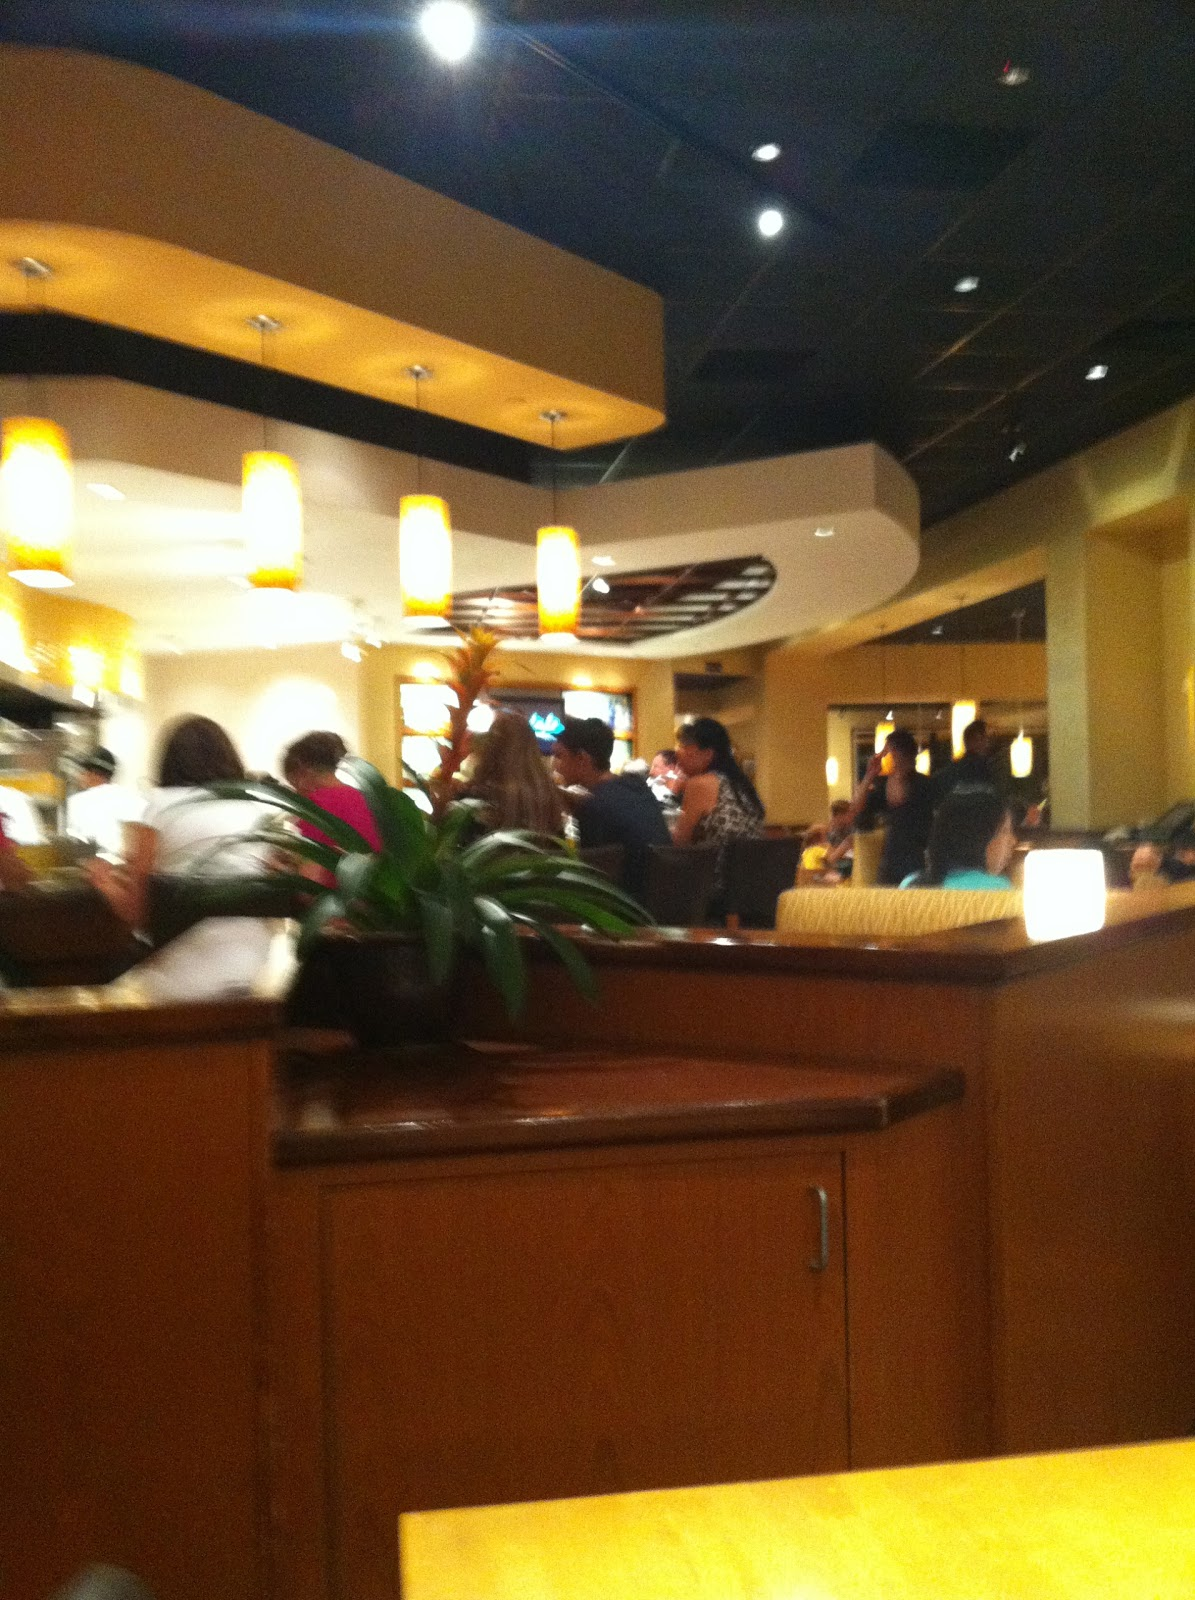 California Pizza Kitchen Anaheim Garden Walk Taste Of Hawaii California Pizza Kitchen